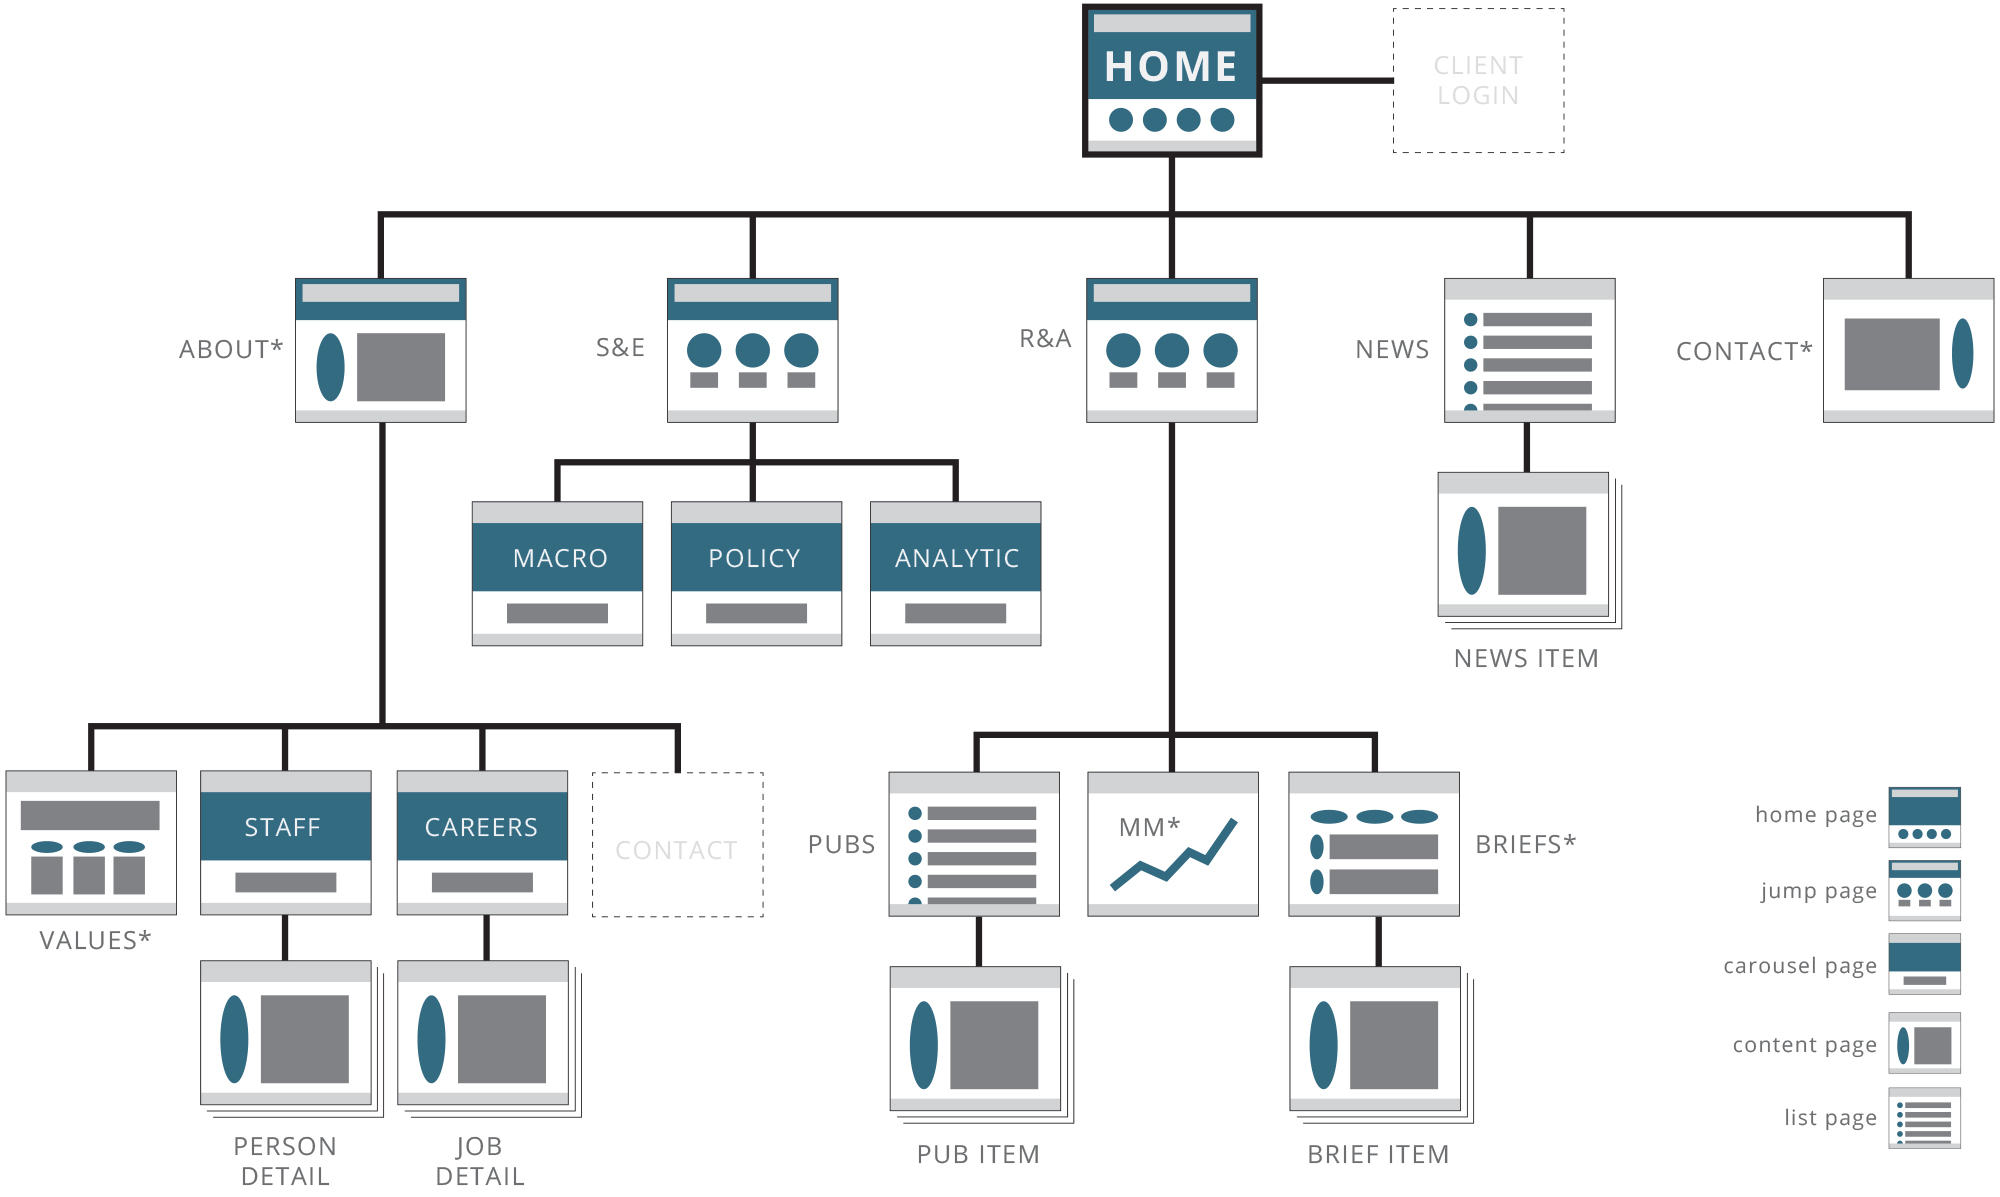 Sitemaps give an overarching perspective of what content is within a website or app, as well as navigation avenues